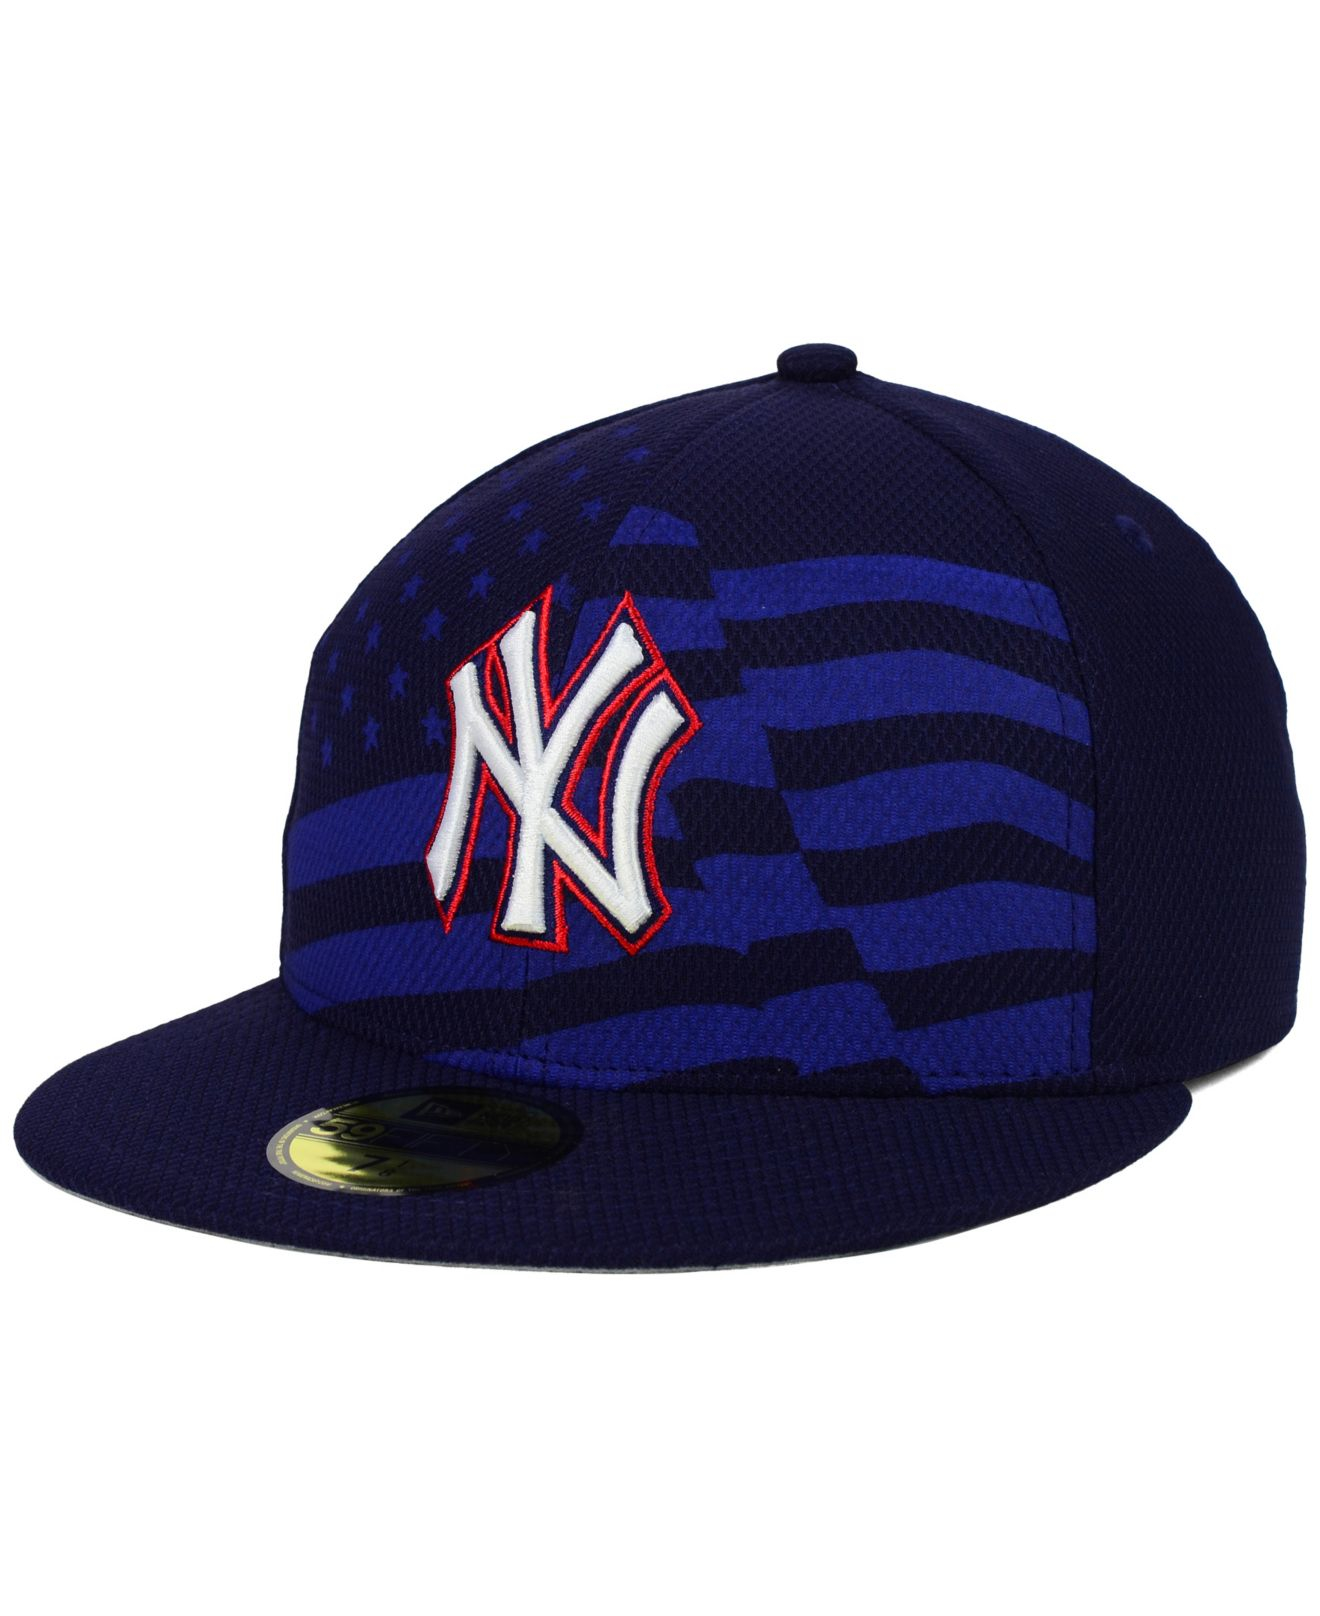 buy popular f36c3 1eaa0 KTZ New York Yankees July 4th Stars   Stripes 59fifty Cap in Blue ...